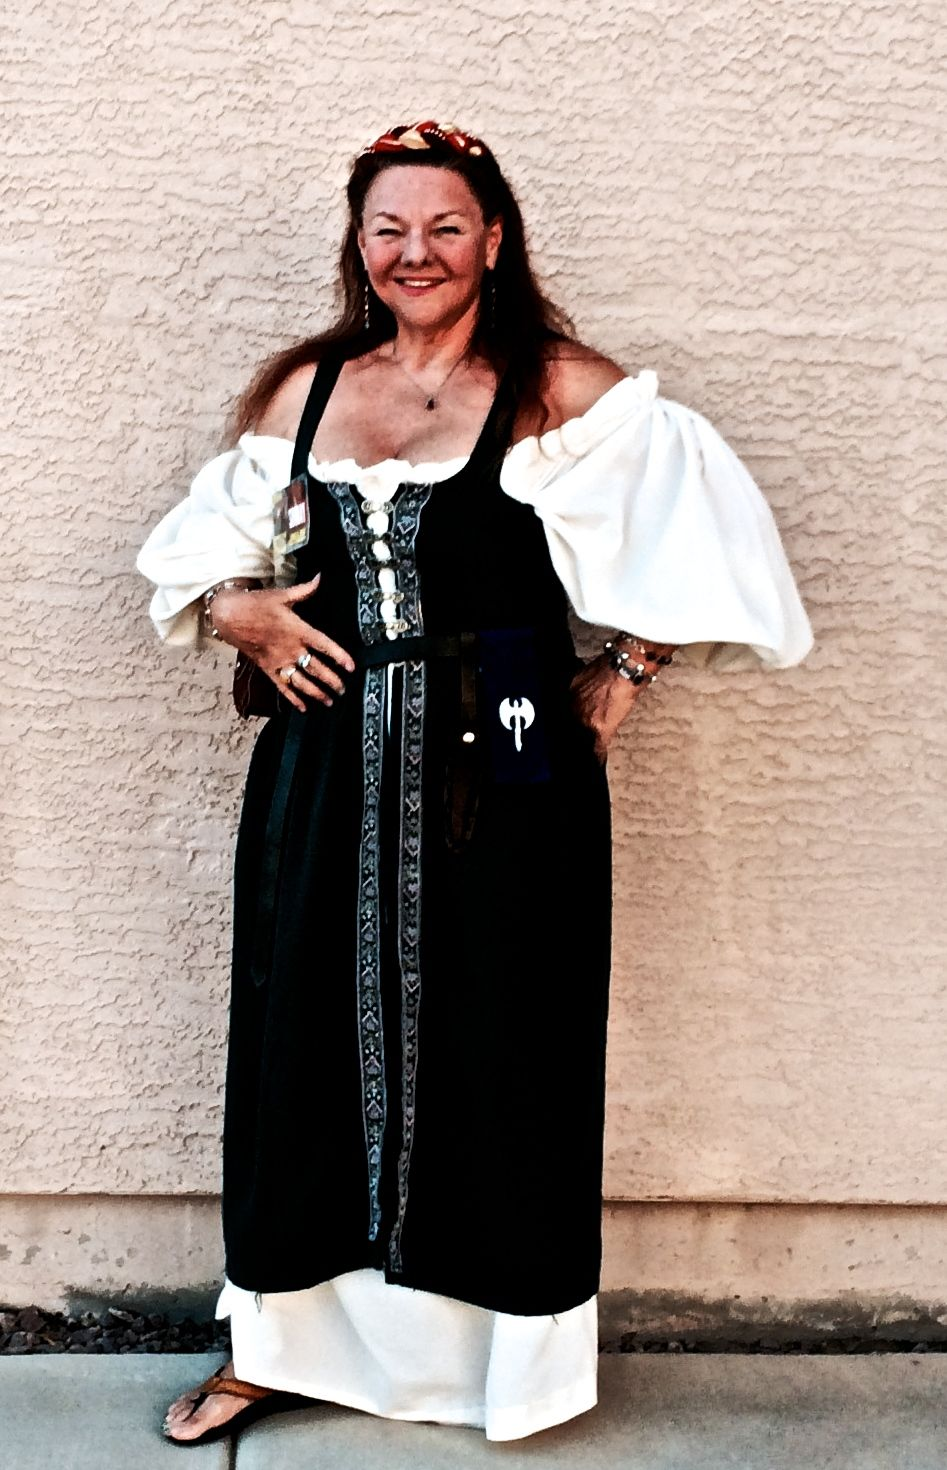 #KharolinaCostume dresses #Medieval #Renaisance  up for #Comic-Con